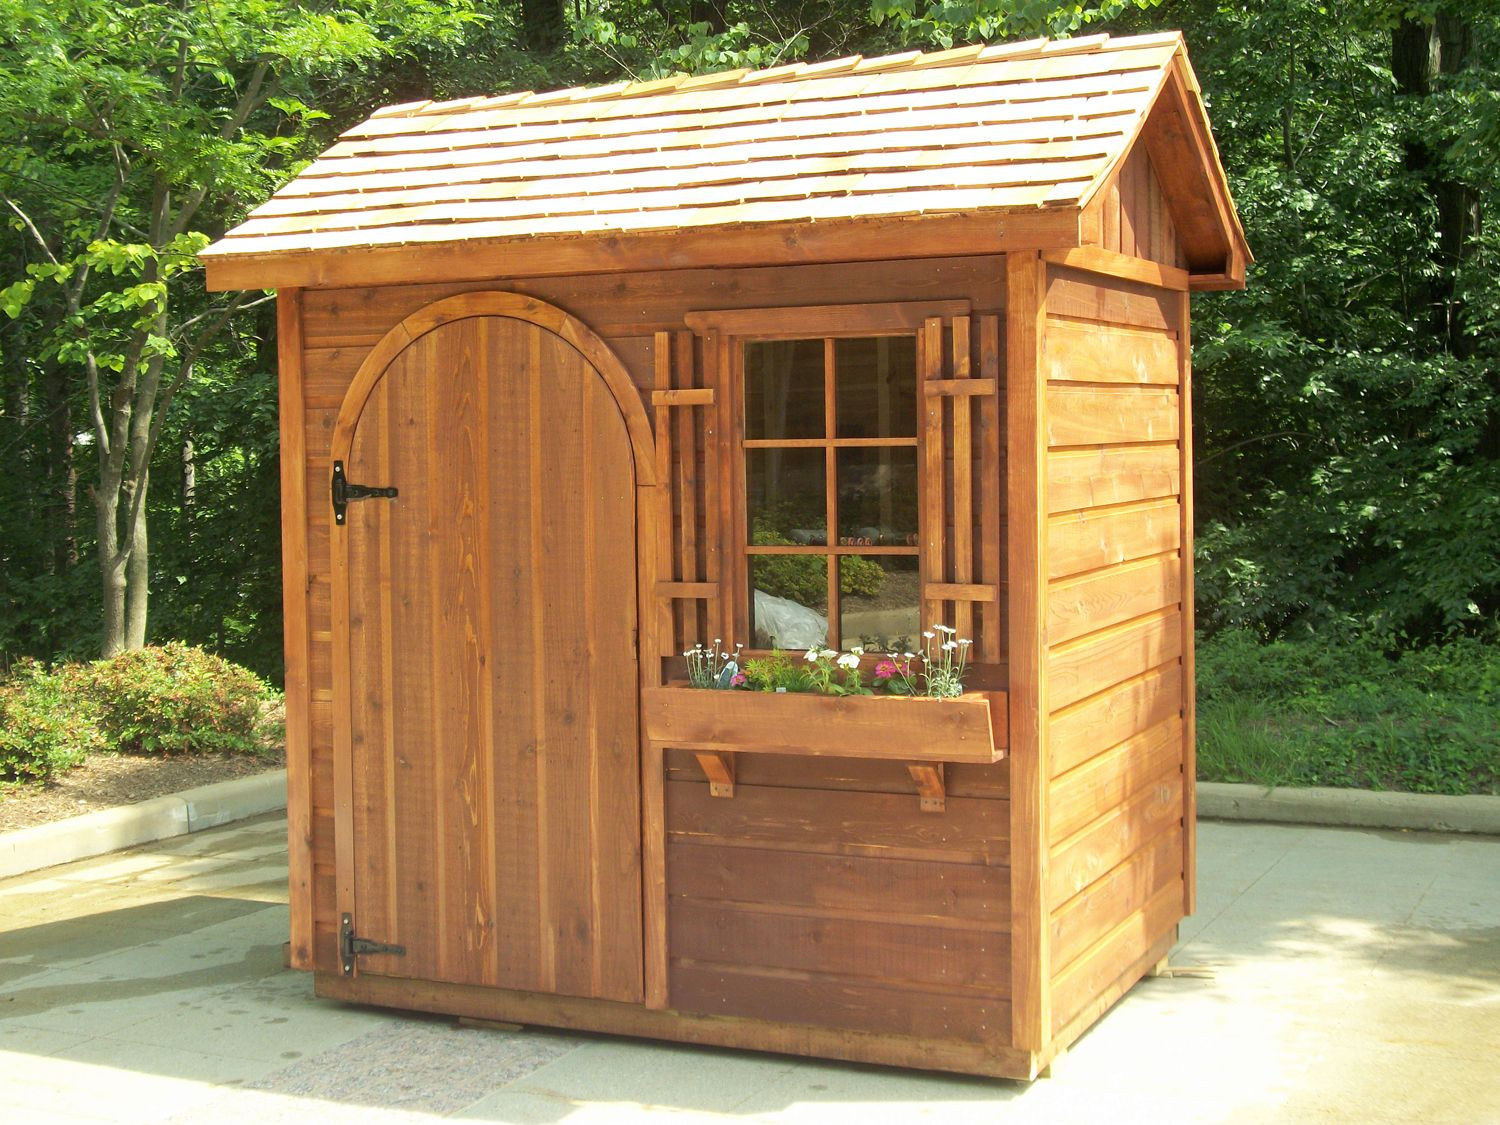 5 Tips To Assist You Arrange Your Garden Shed Small Shed Plans